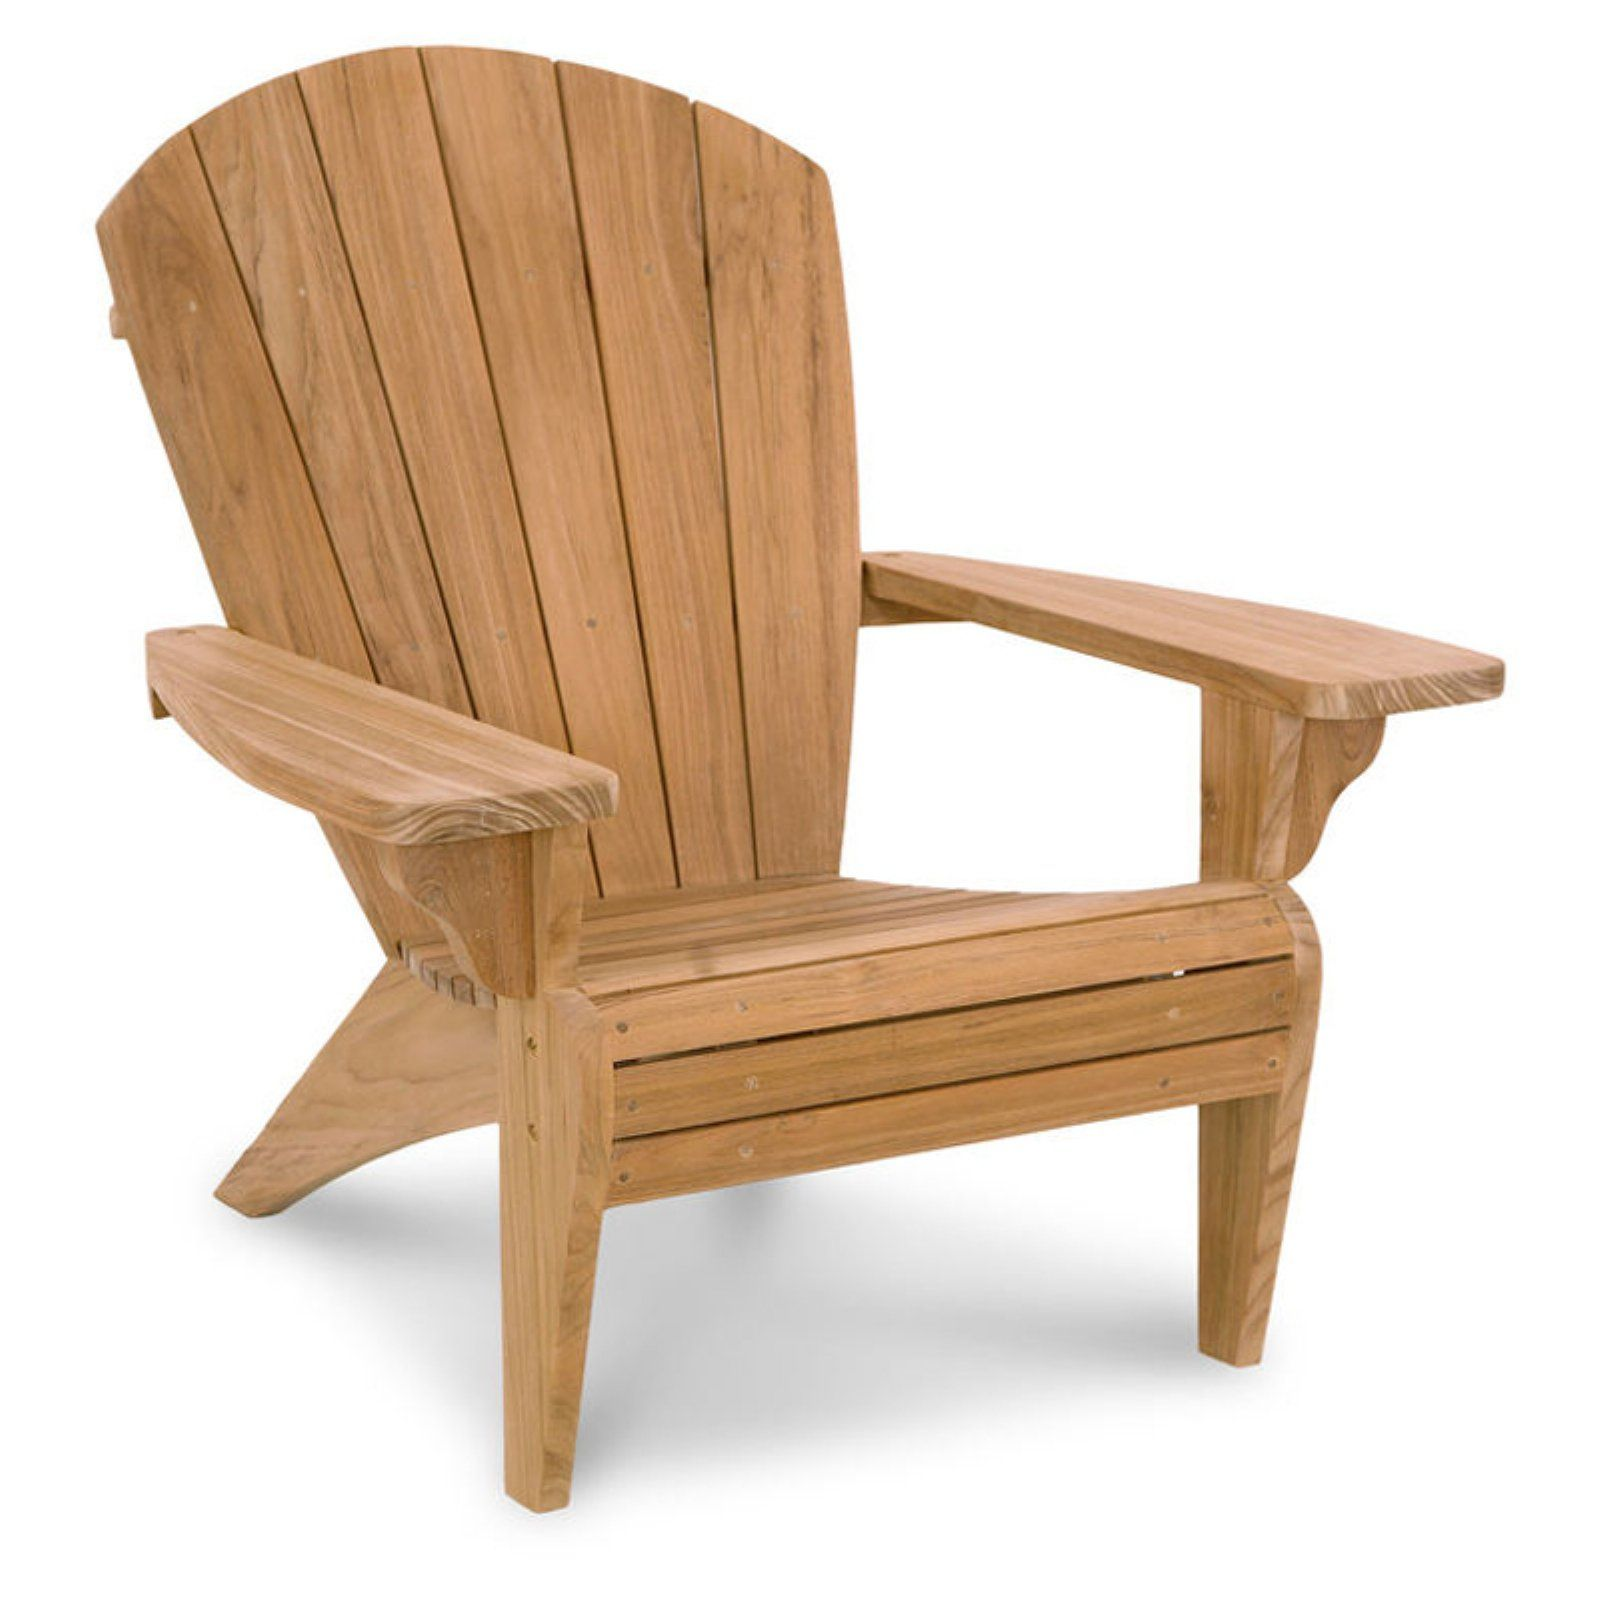 Outdoor Douglas Nance Key Wester Teak Adirondack Chair Products In